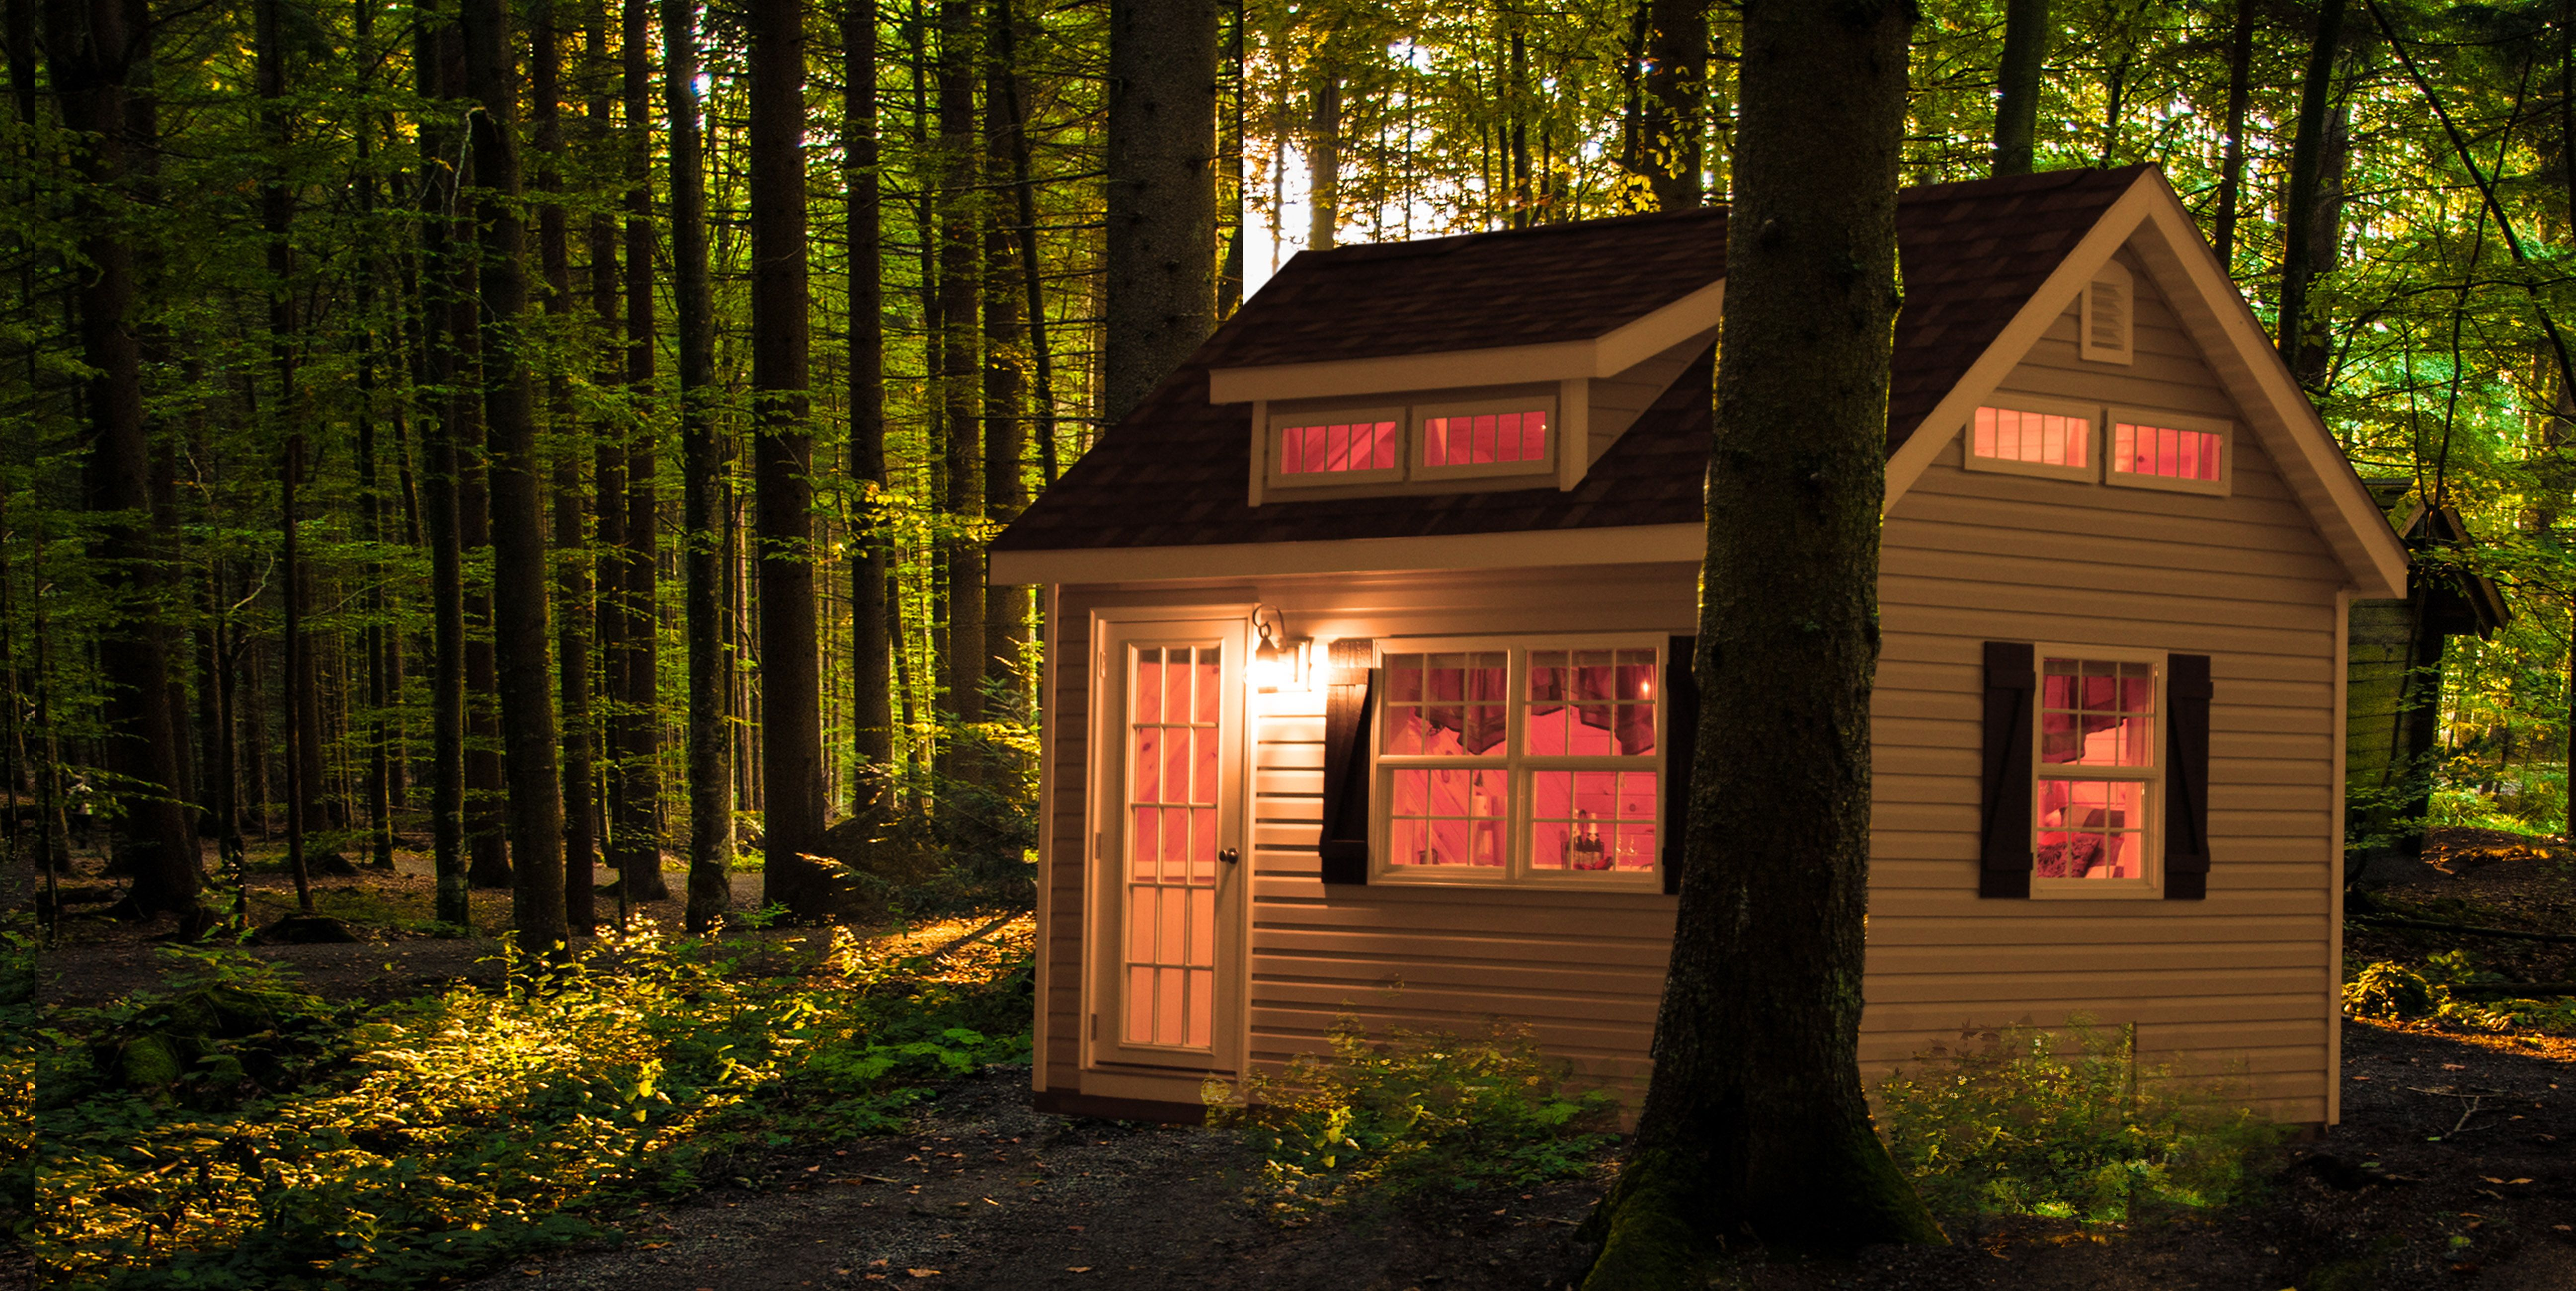 Storage Sheds And Prefab Garages From Pa Guest House Cottage Small Houses For Sale Tiny House Community